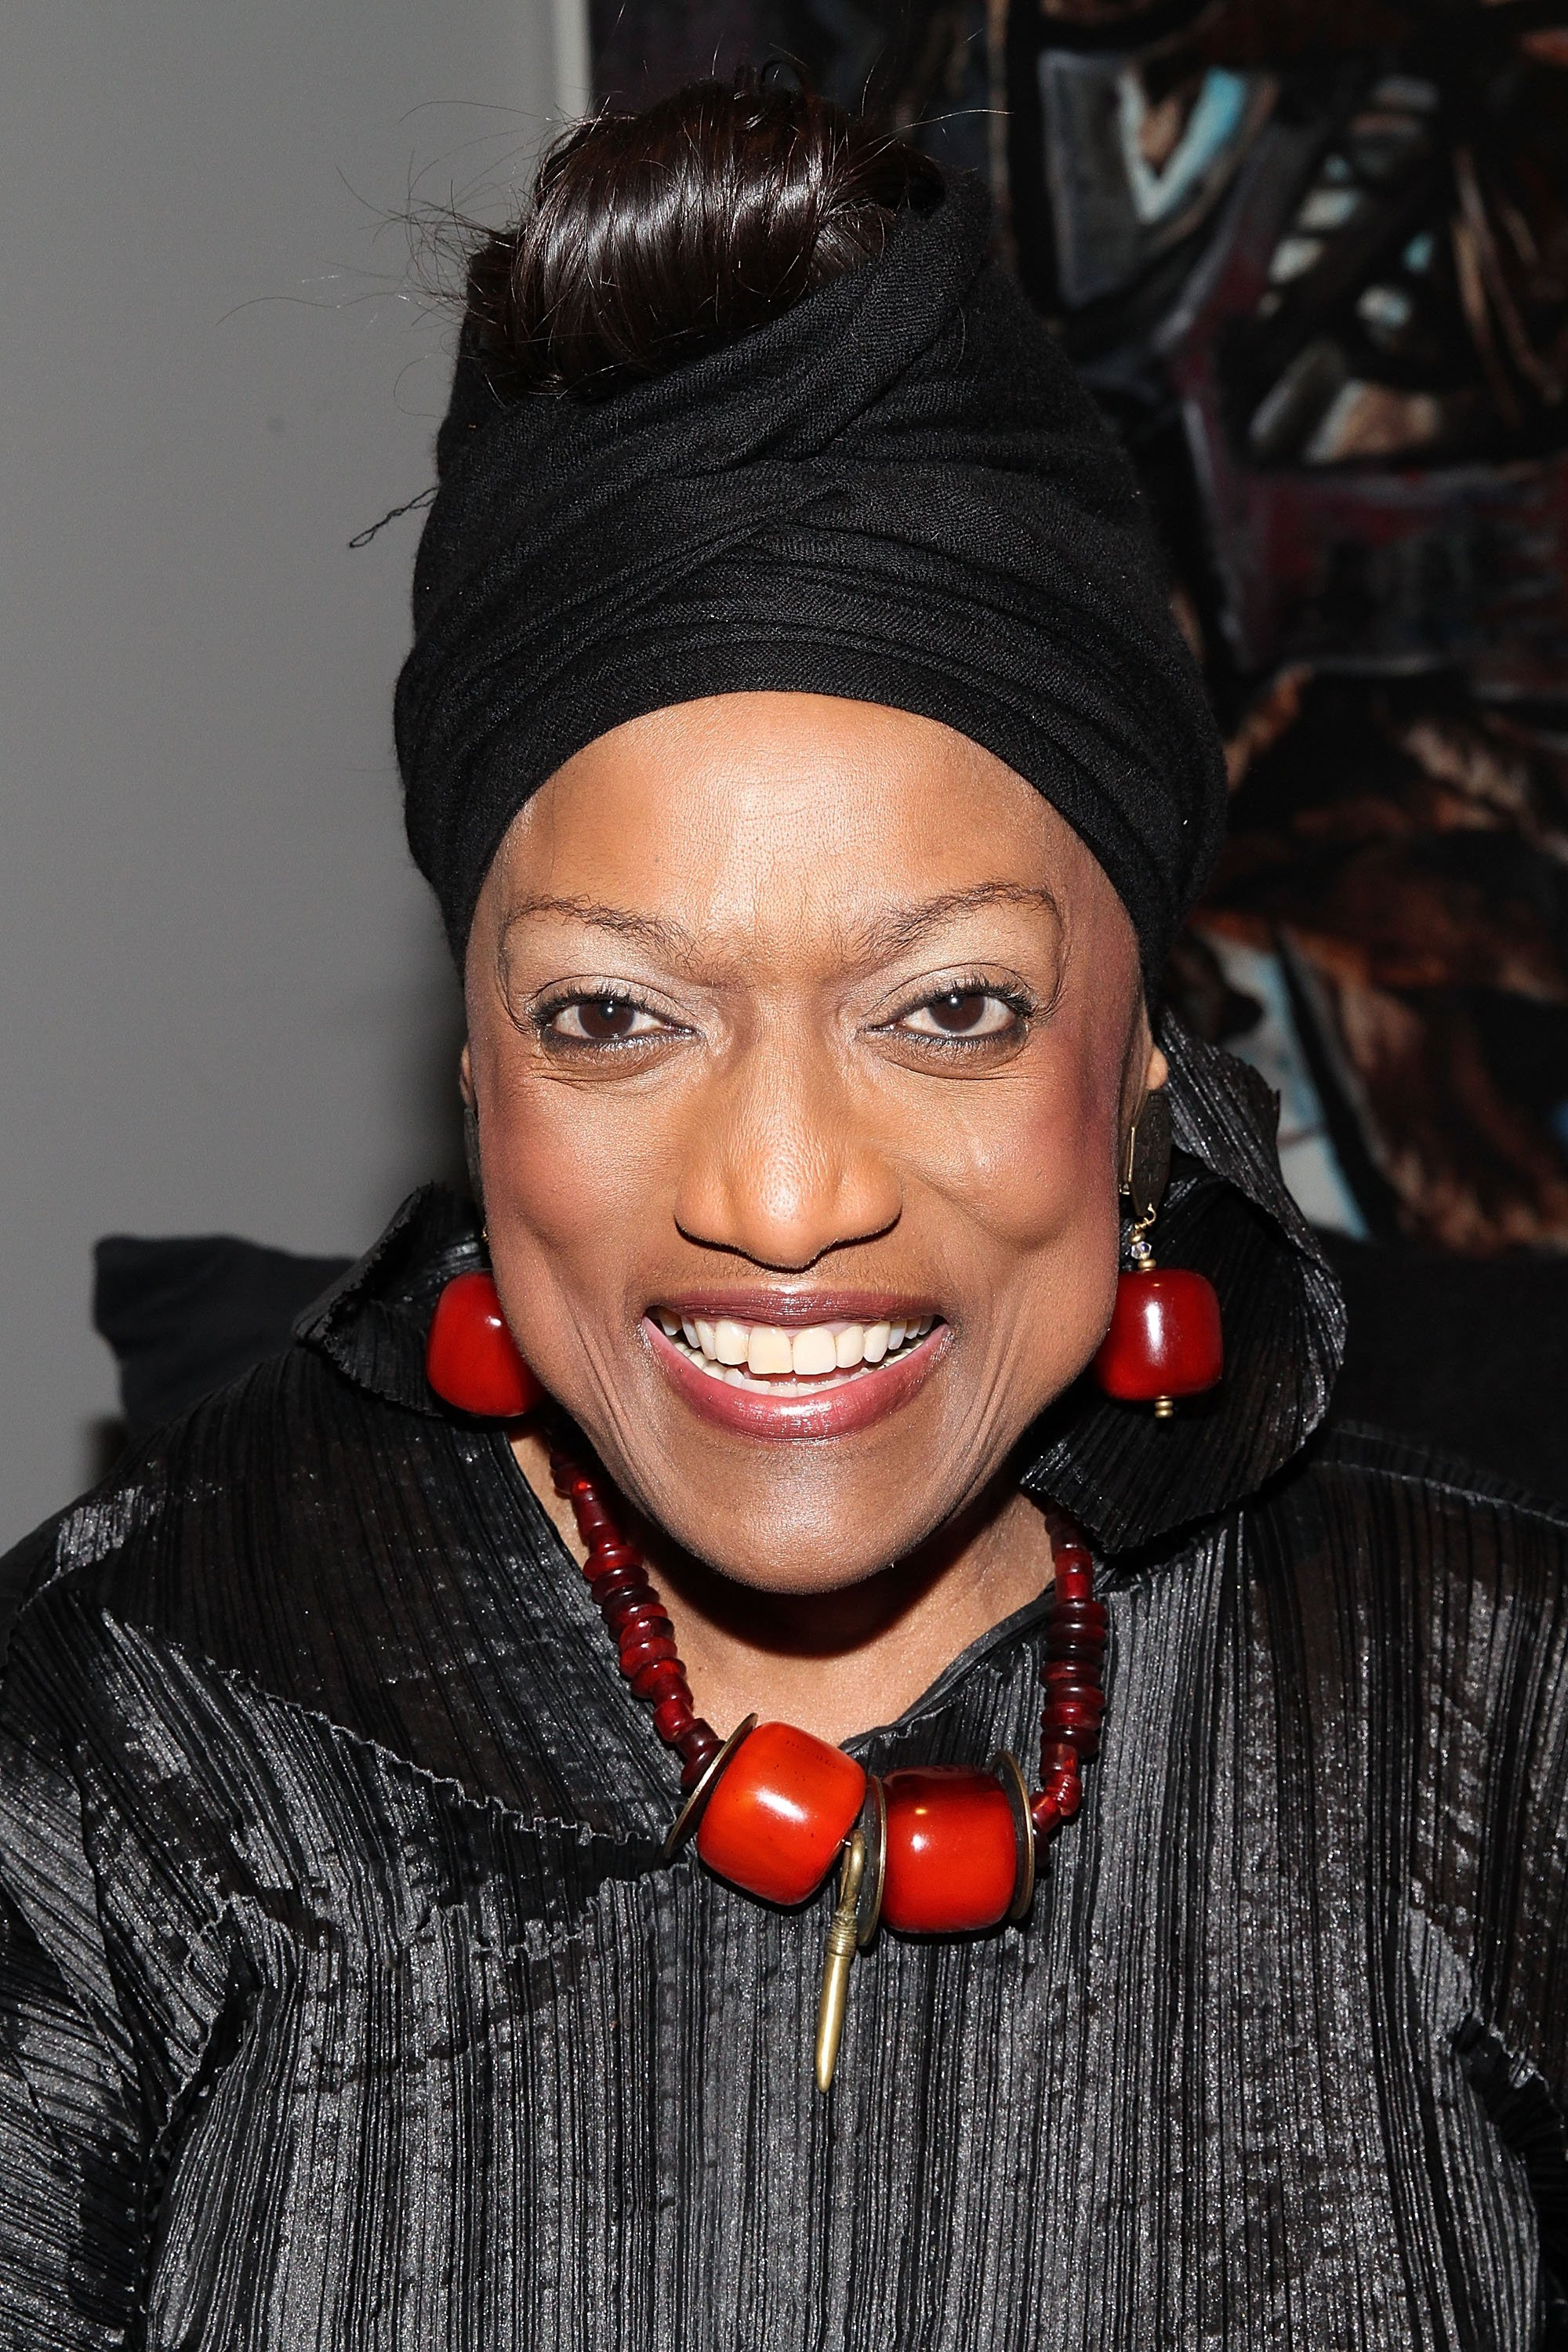 Jessye Norman attends the ACRIA annual holiday dinner benefiting AIDS research on December 11, 2013 in New York City | Photo: Getty Images